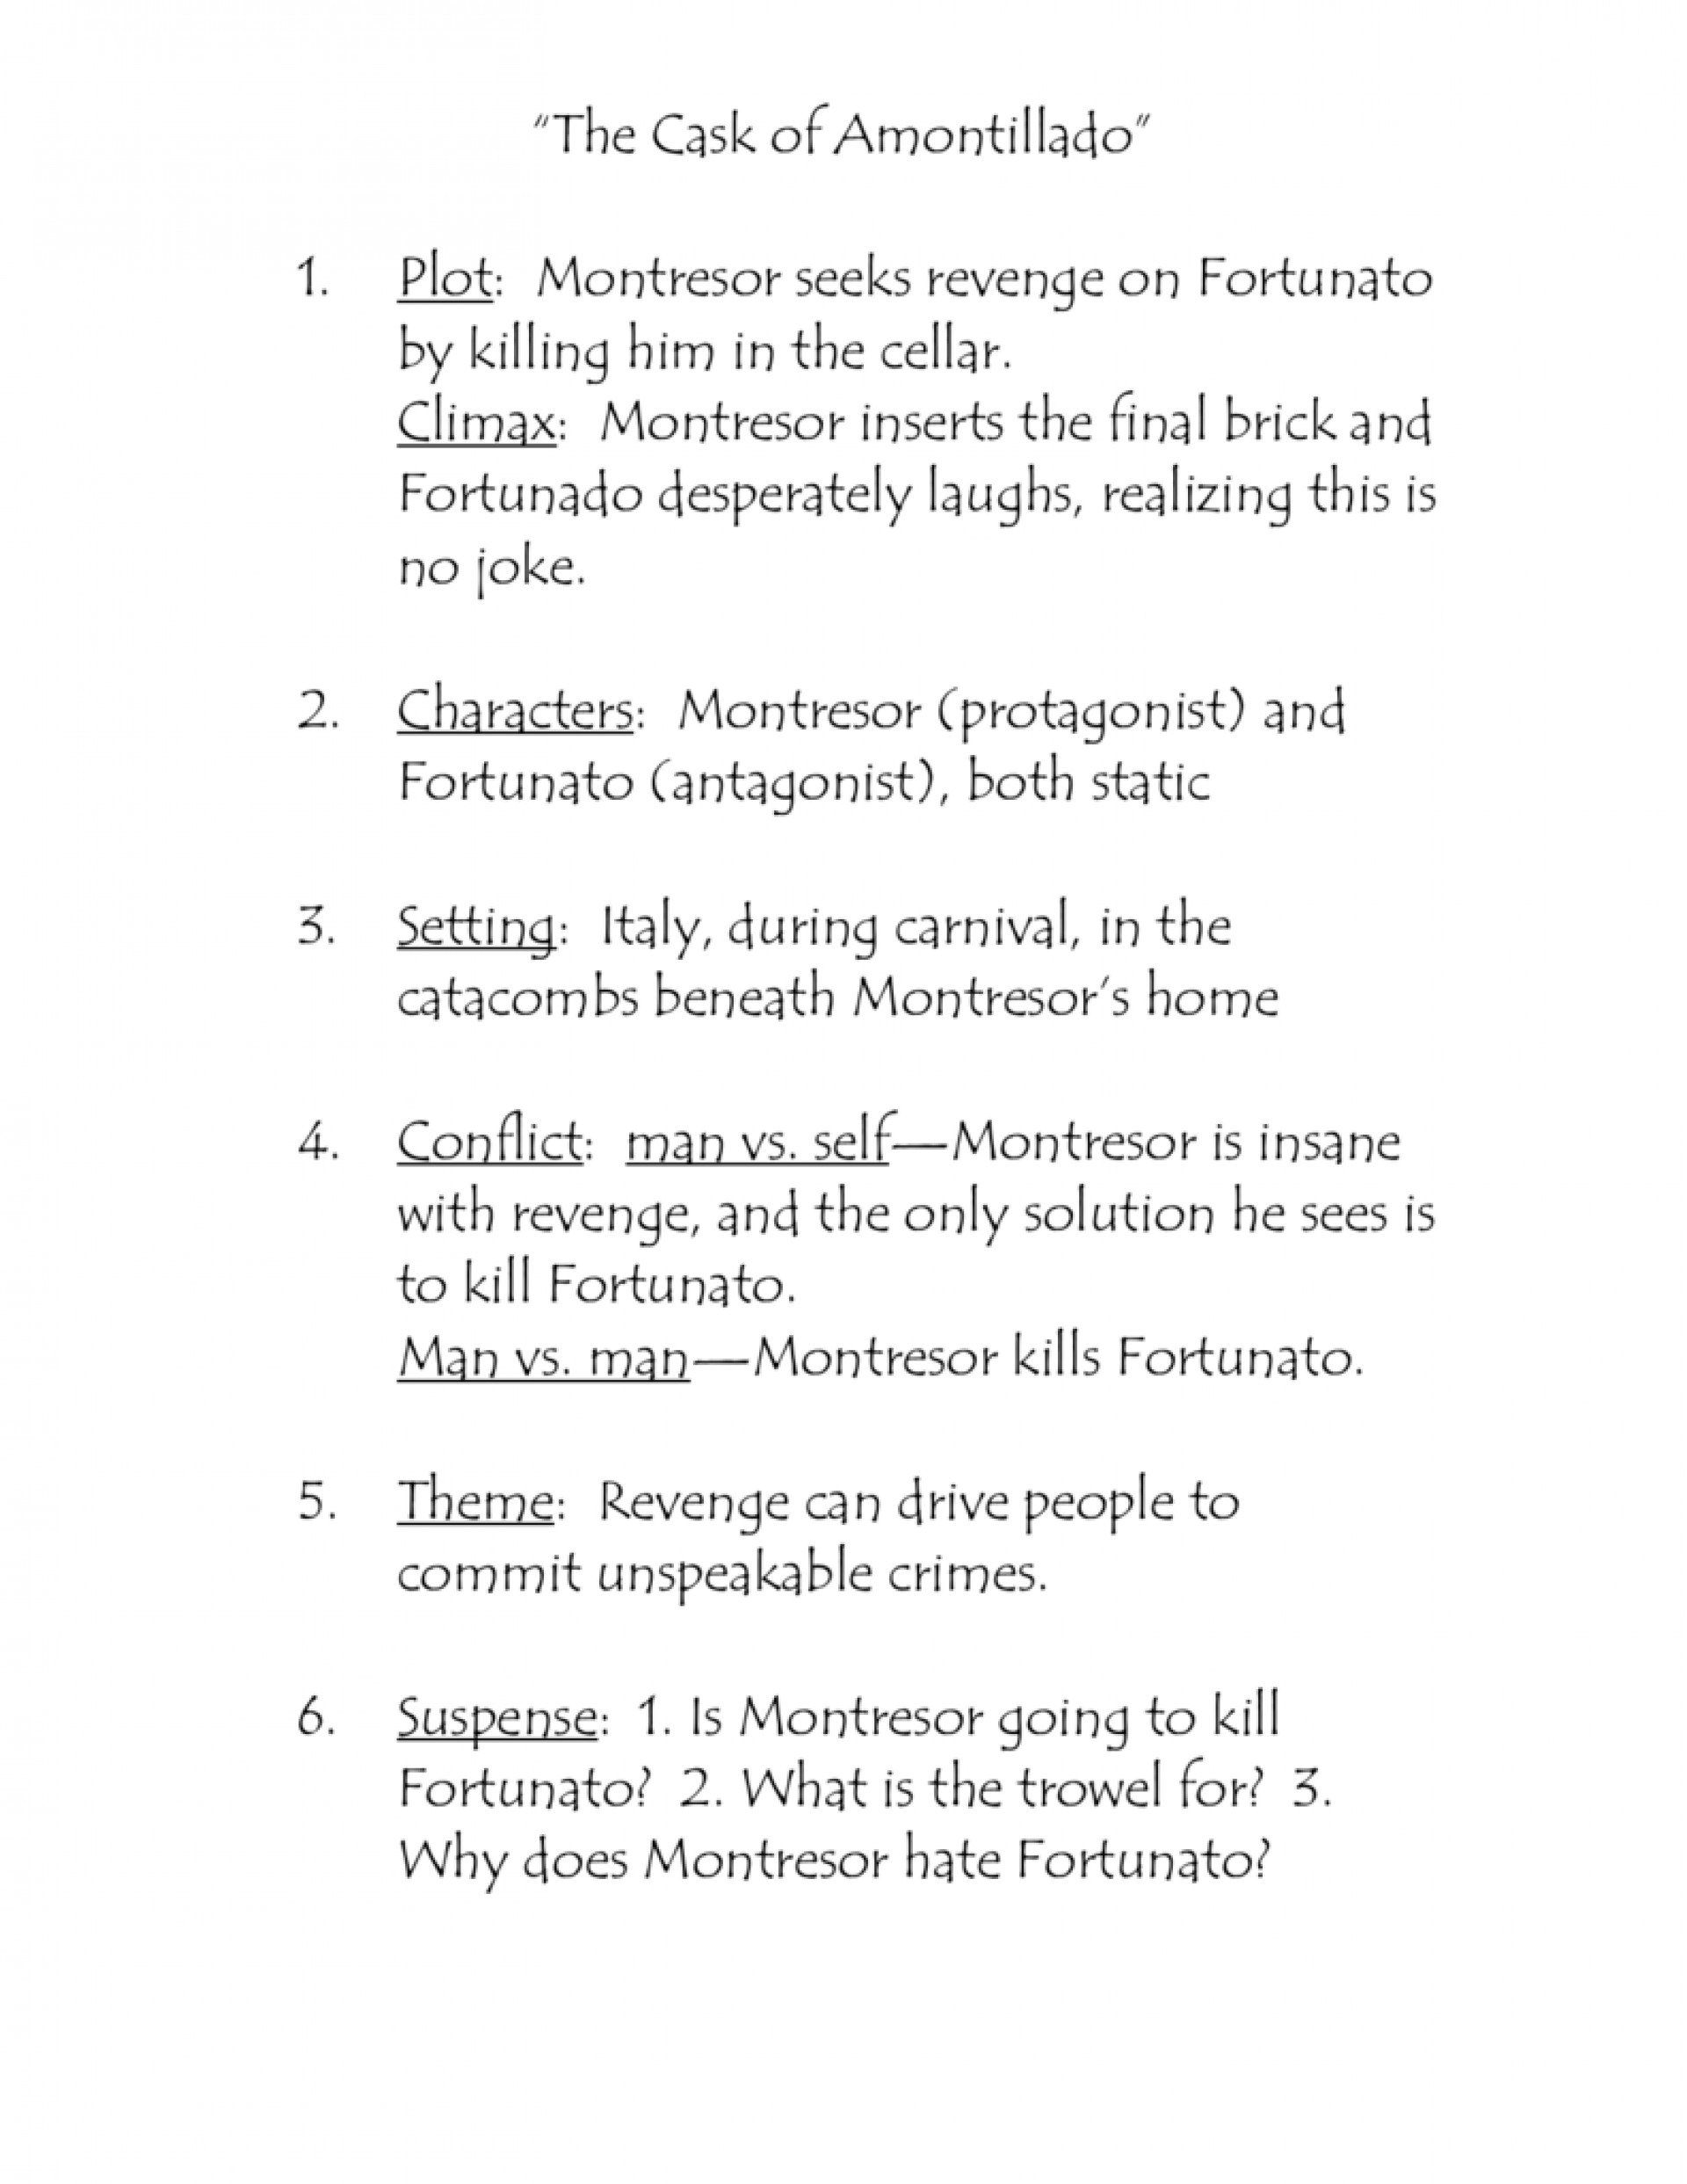 004 The Cask Of Amontillado Essay Example 008065055 1 Unforgettable Outline Prompts Topics 1920